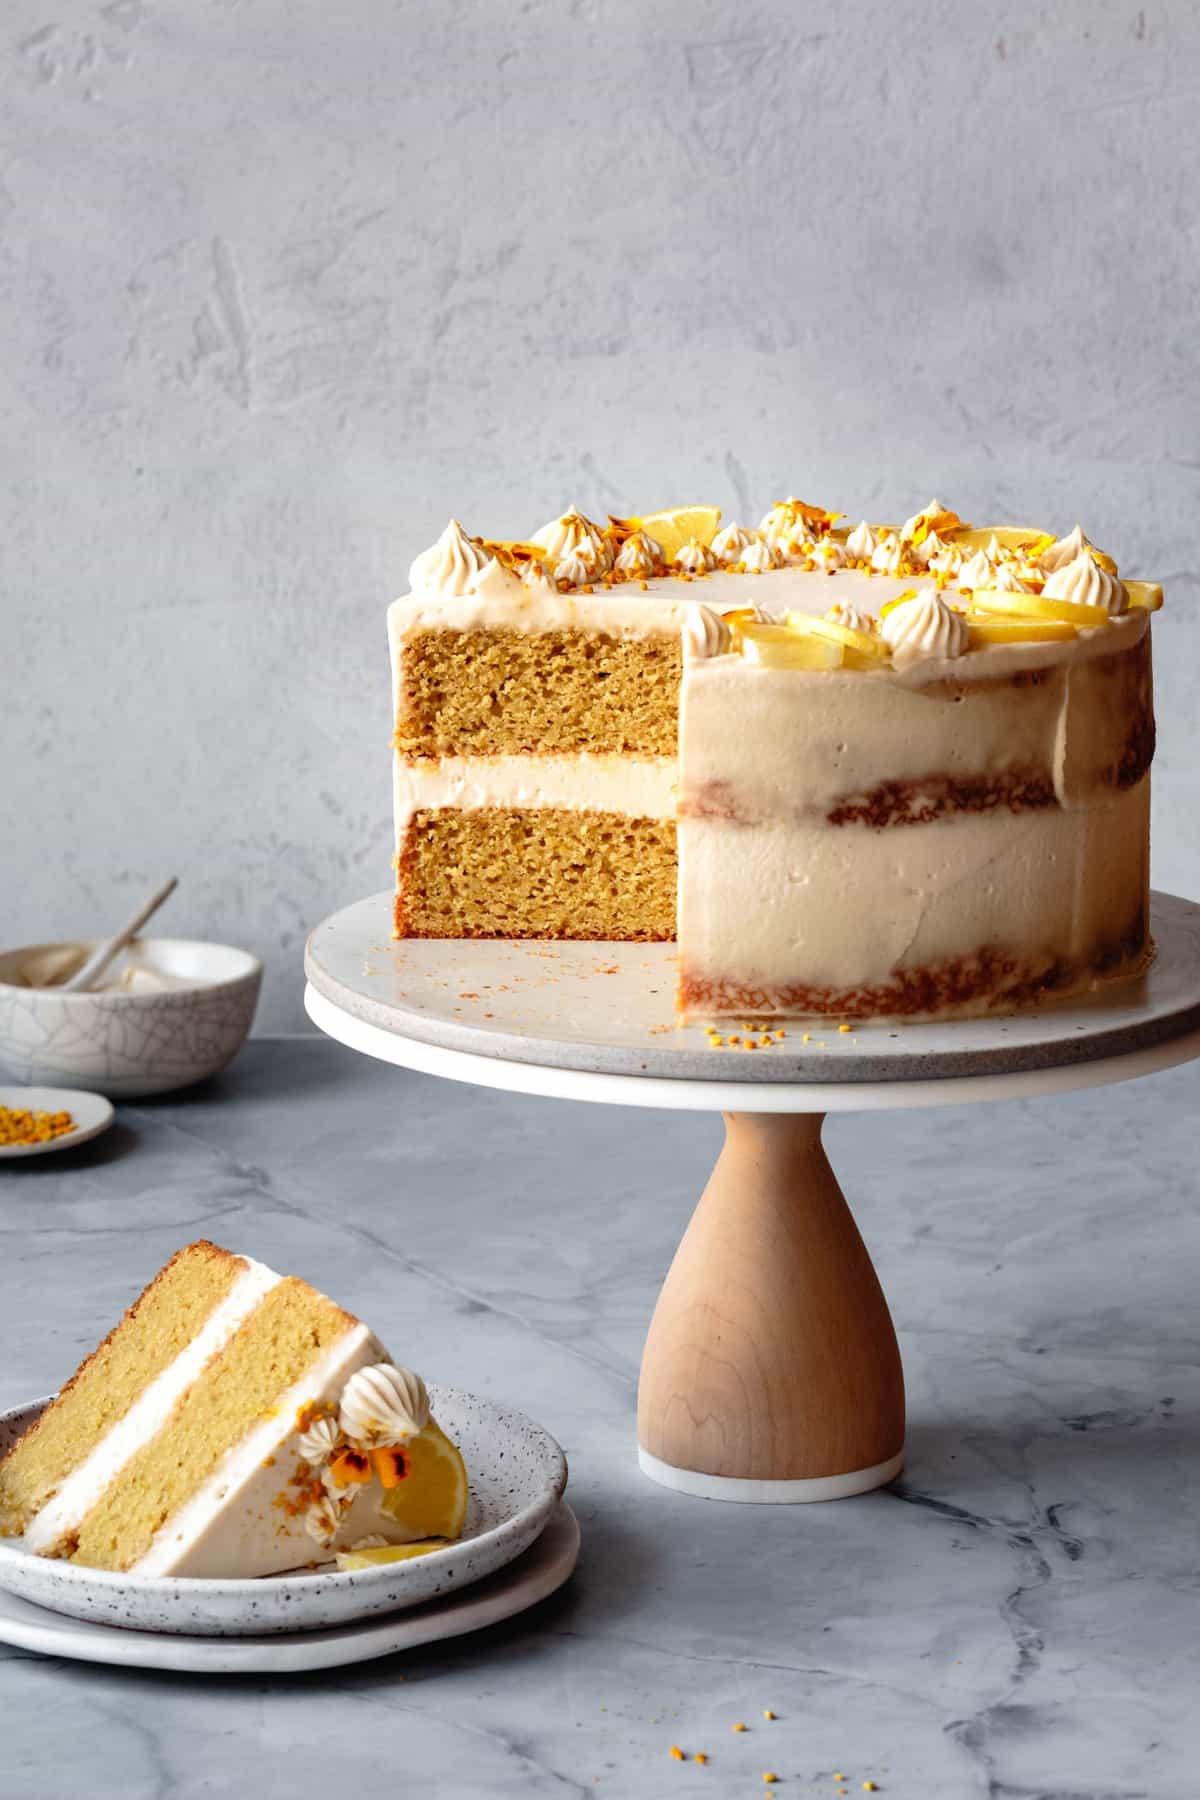 paleo lemon cake with a slice cut out on a cake stand against a plaster wall